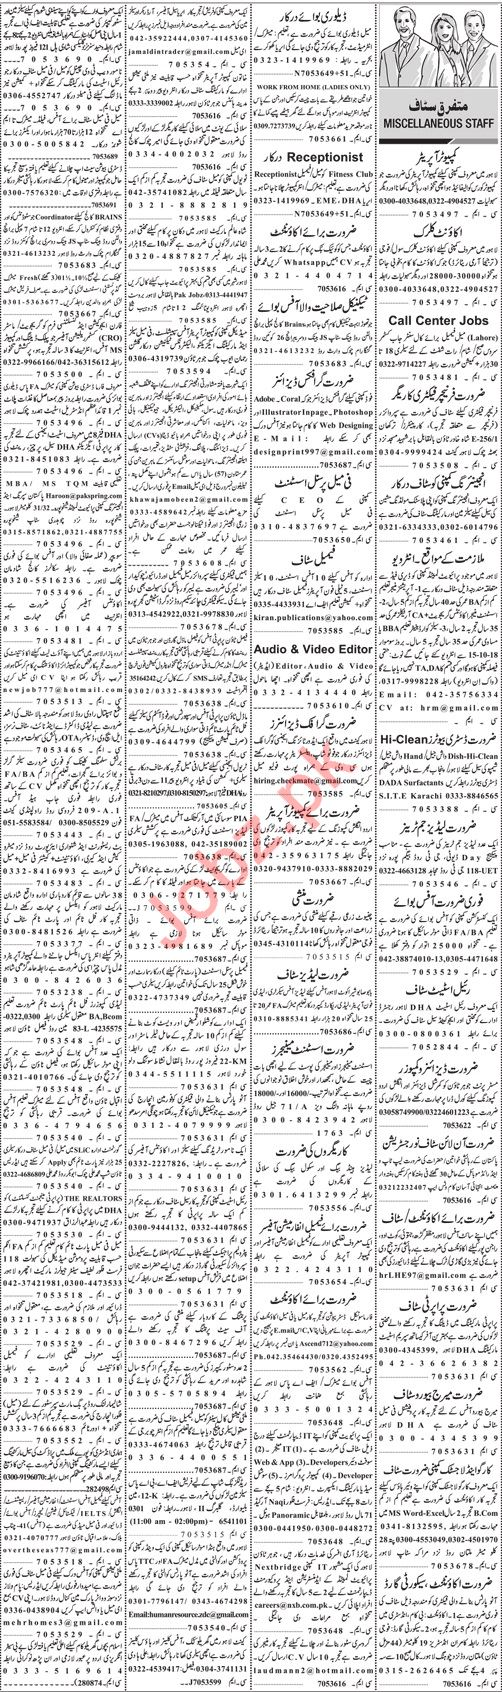 Jang Sunday Miscellaneous Classified Jobs 14/10/2018